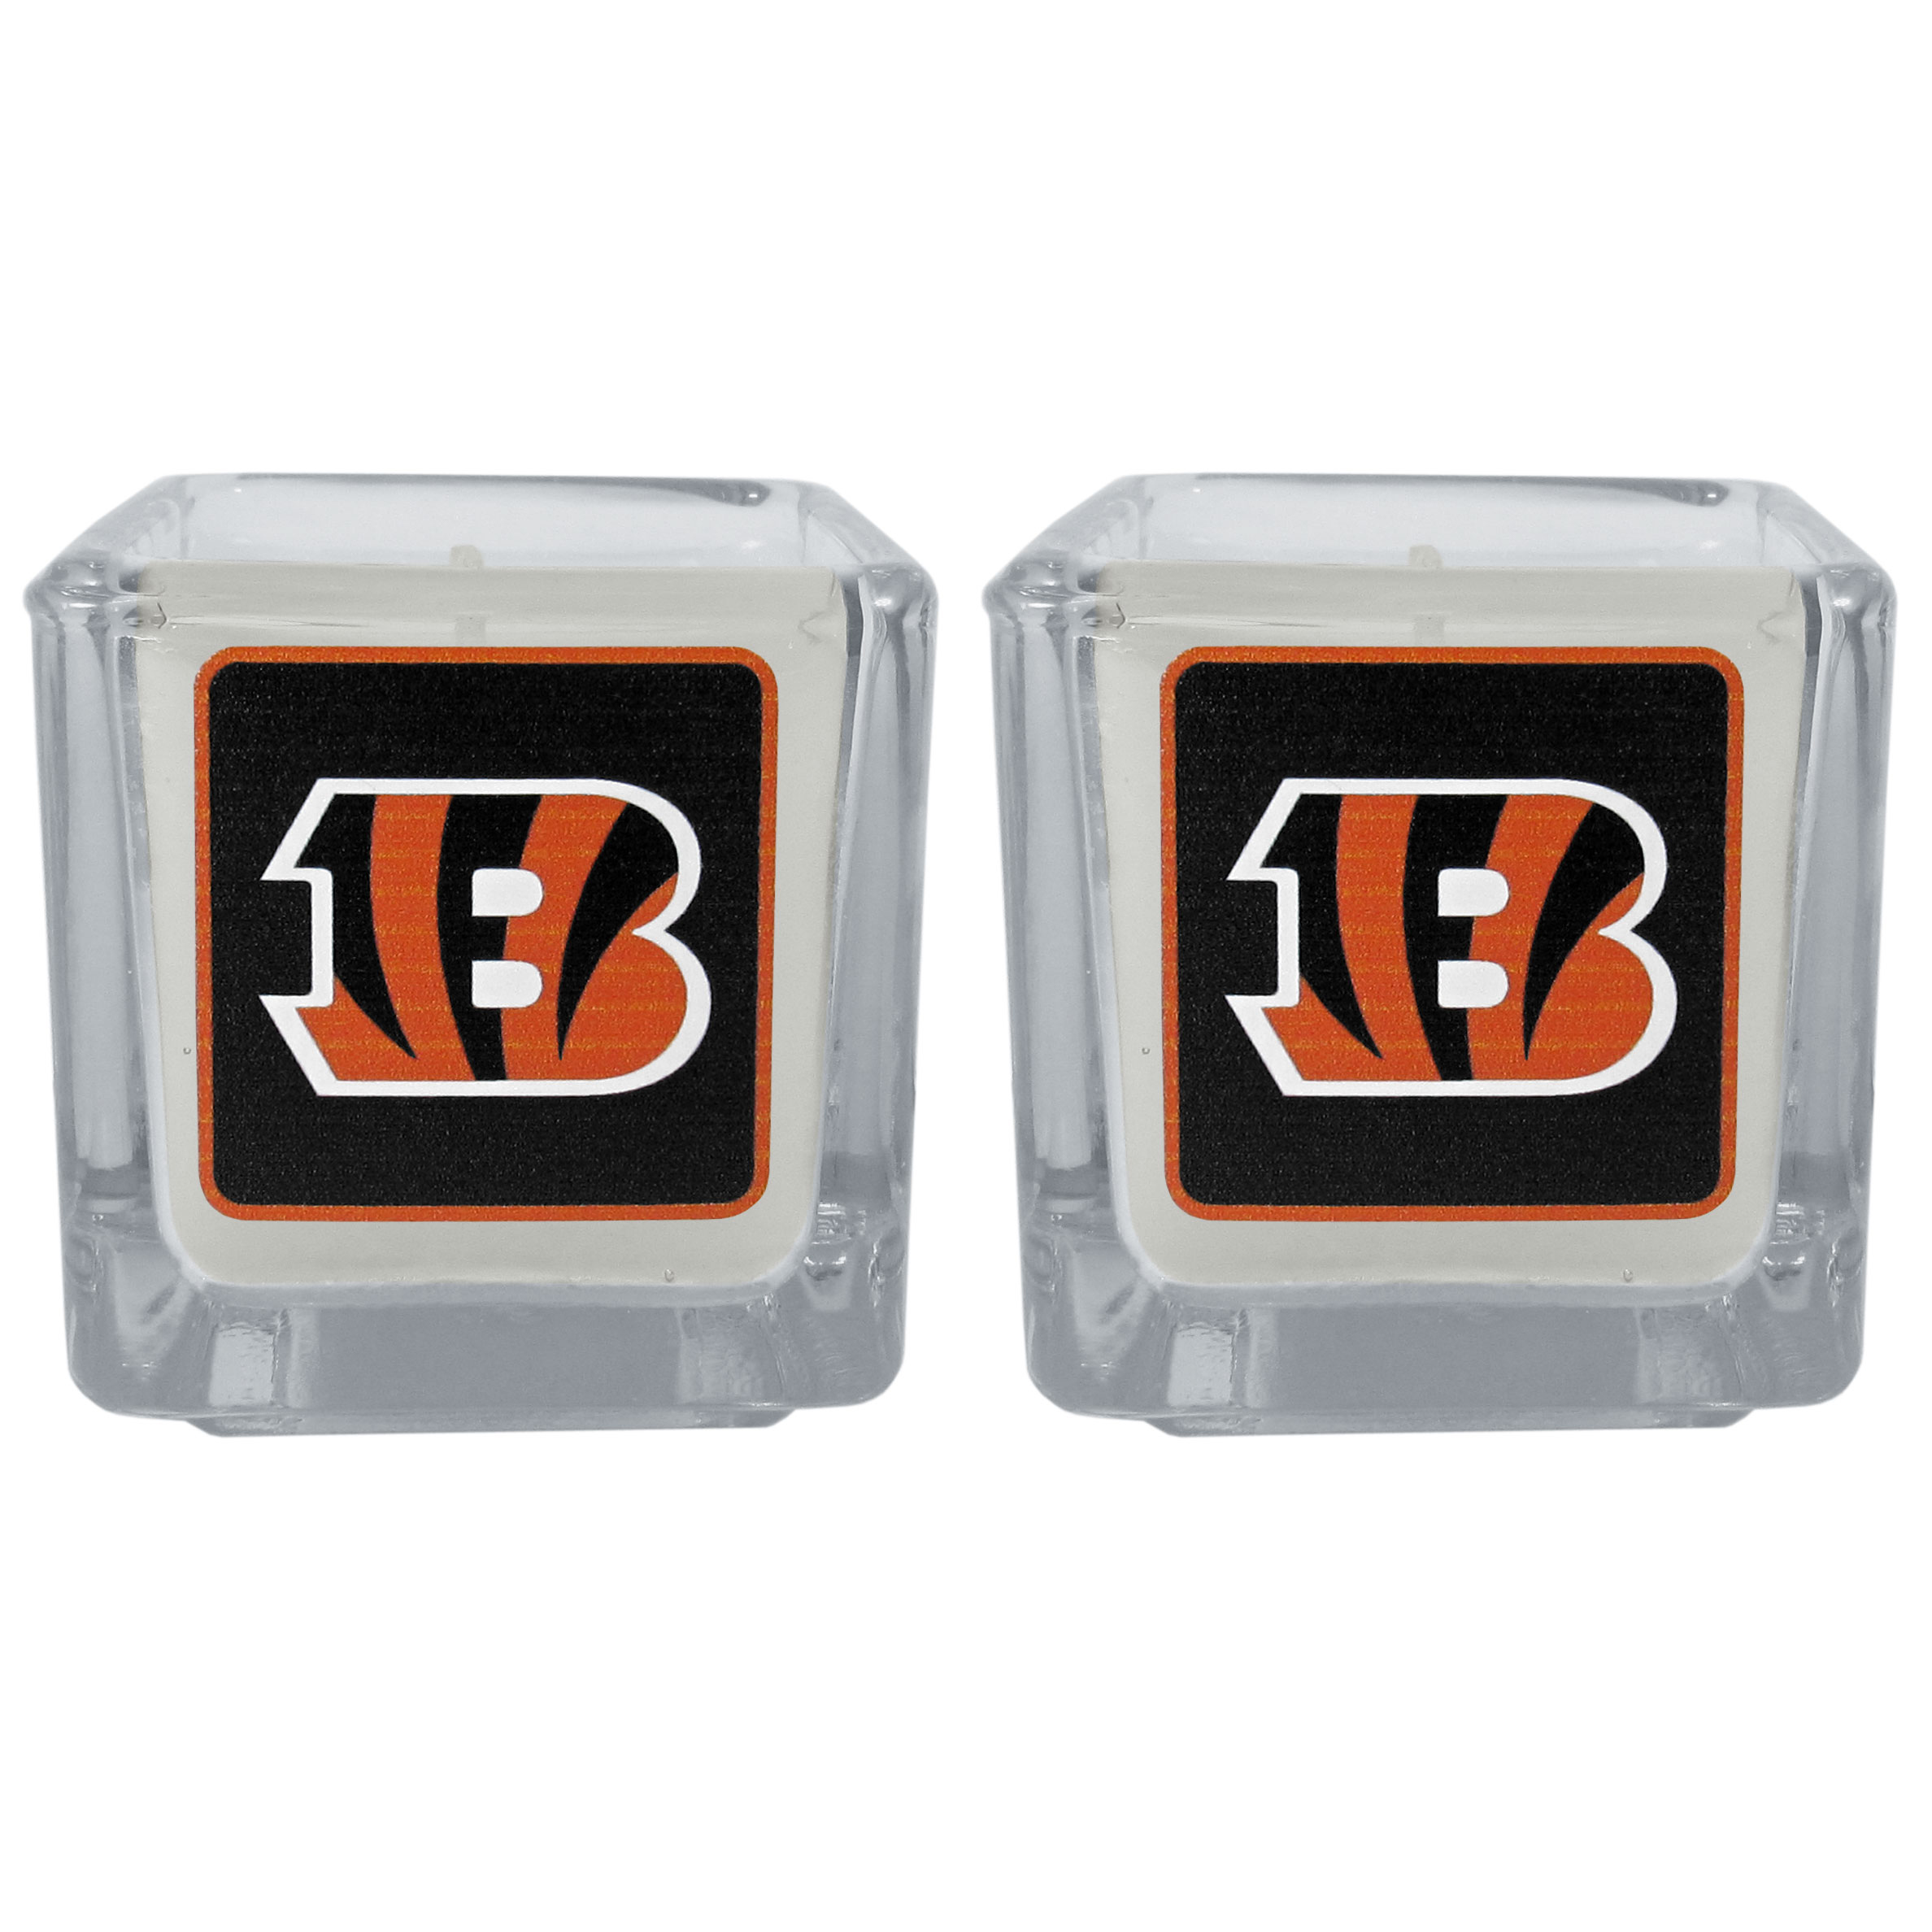 Cincinnati Bengals Graphics Candle Set - Our candle set features 2 lightly vanilla scented candles with the Cincinnati Bengals logo expertly printed on front. The candles are 2 inches tall in the votive style.